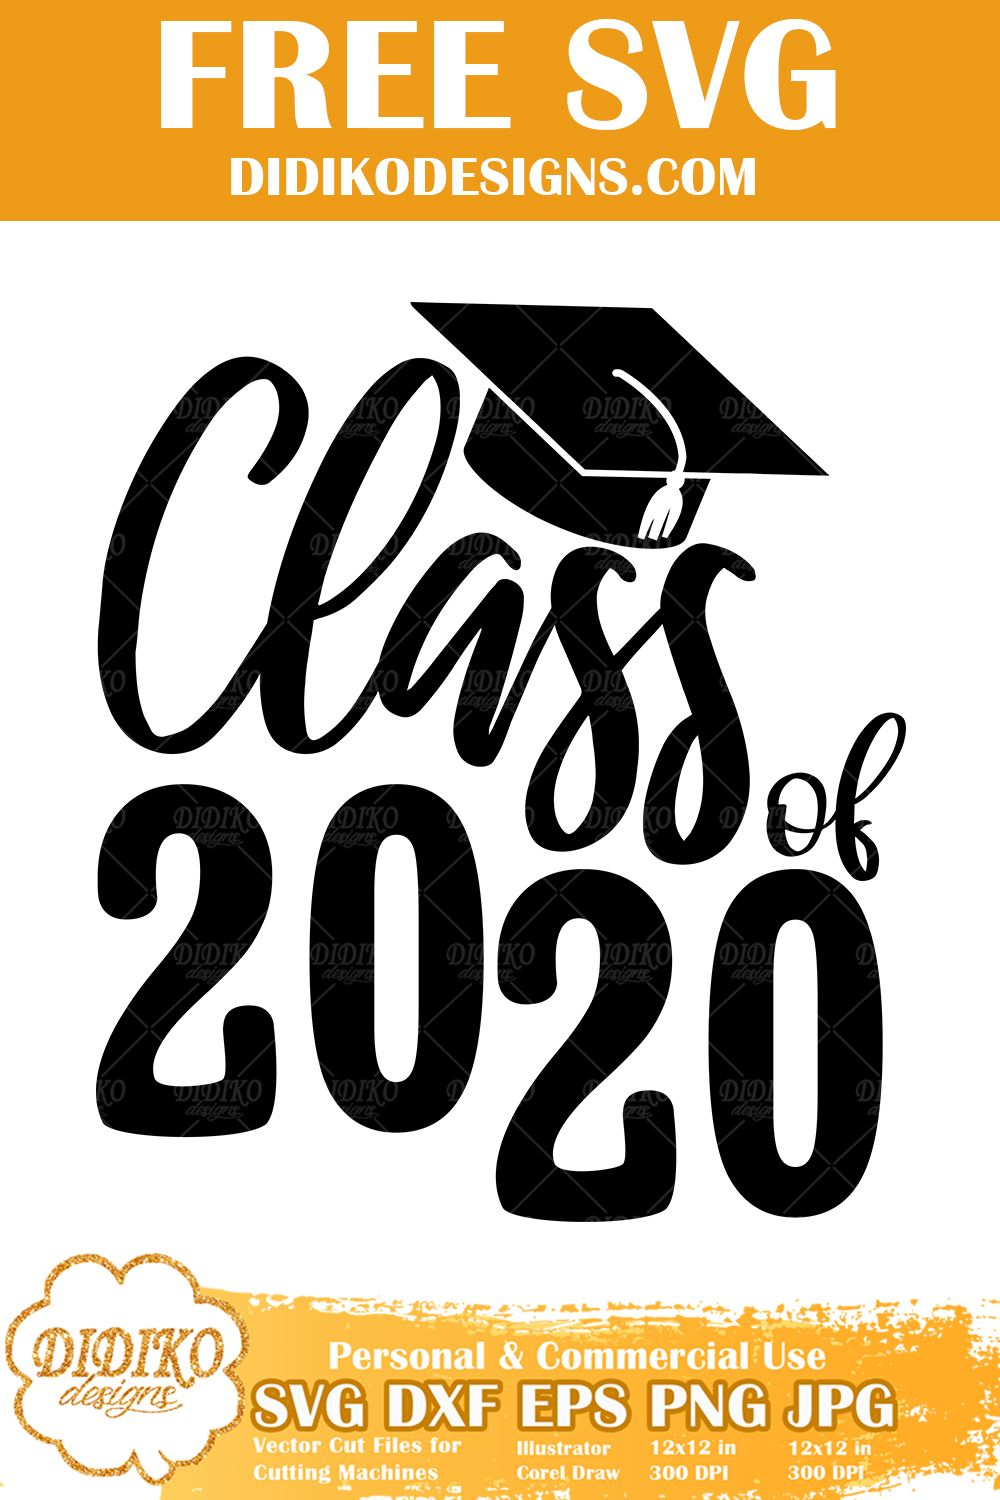 Free Class Of 2020 Svg Graduation Svg File For Cricut Didiko Designs In 2020 Graduation Signs Graduation Printables Graduation Poster